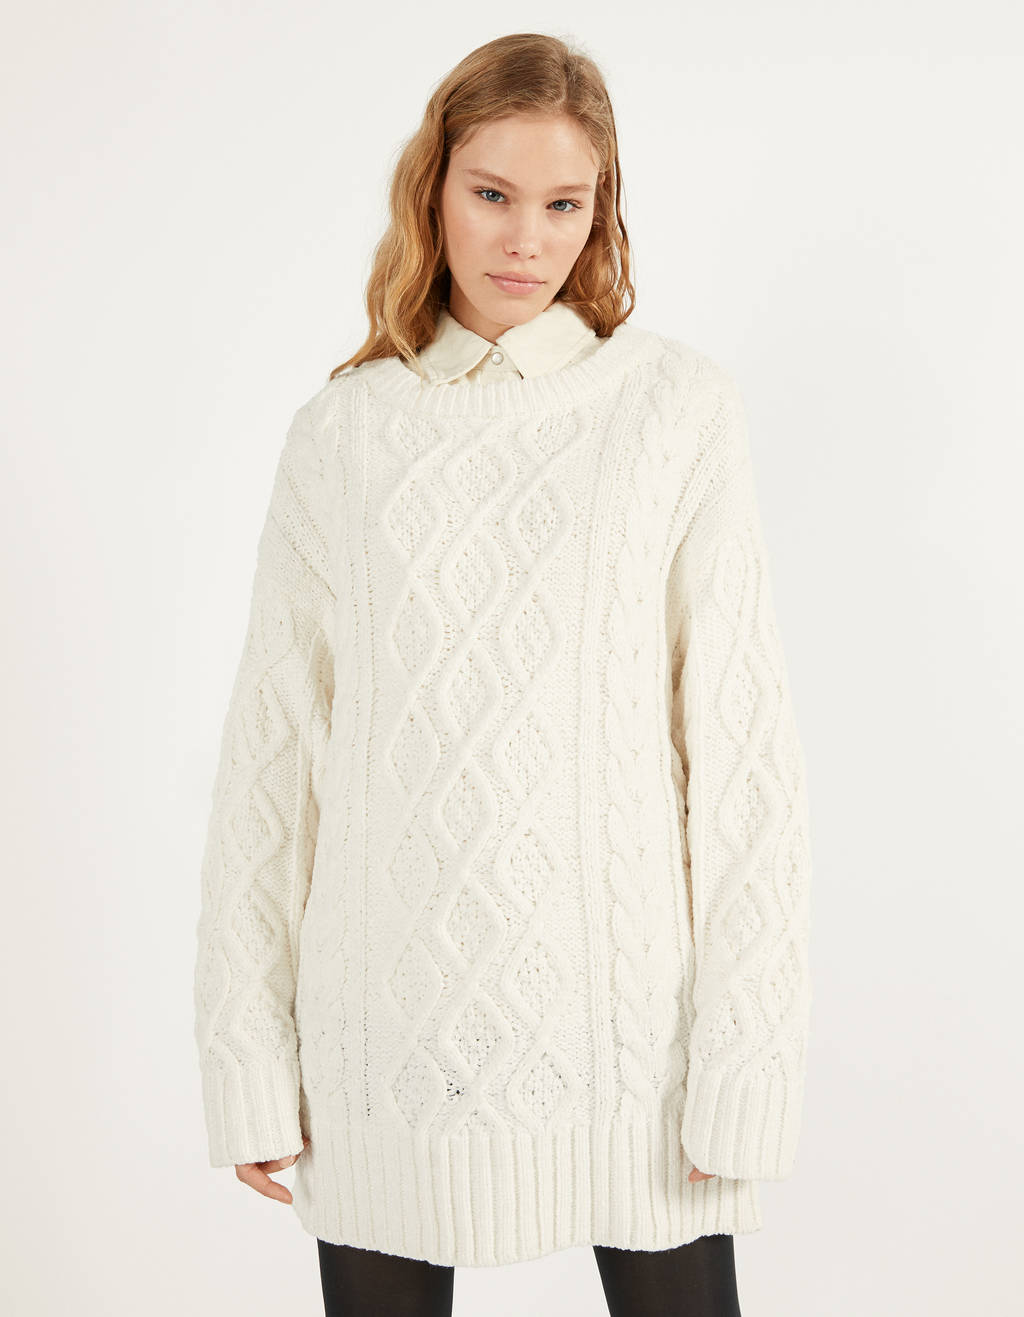 Oversize cable-knit sweater